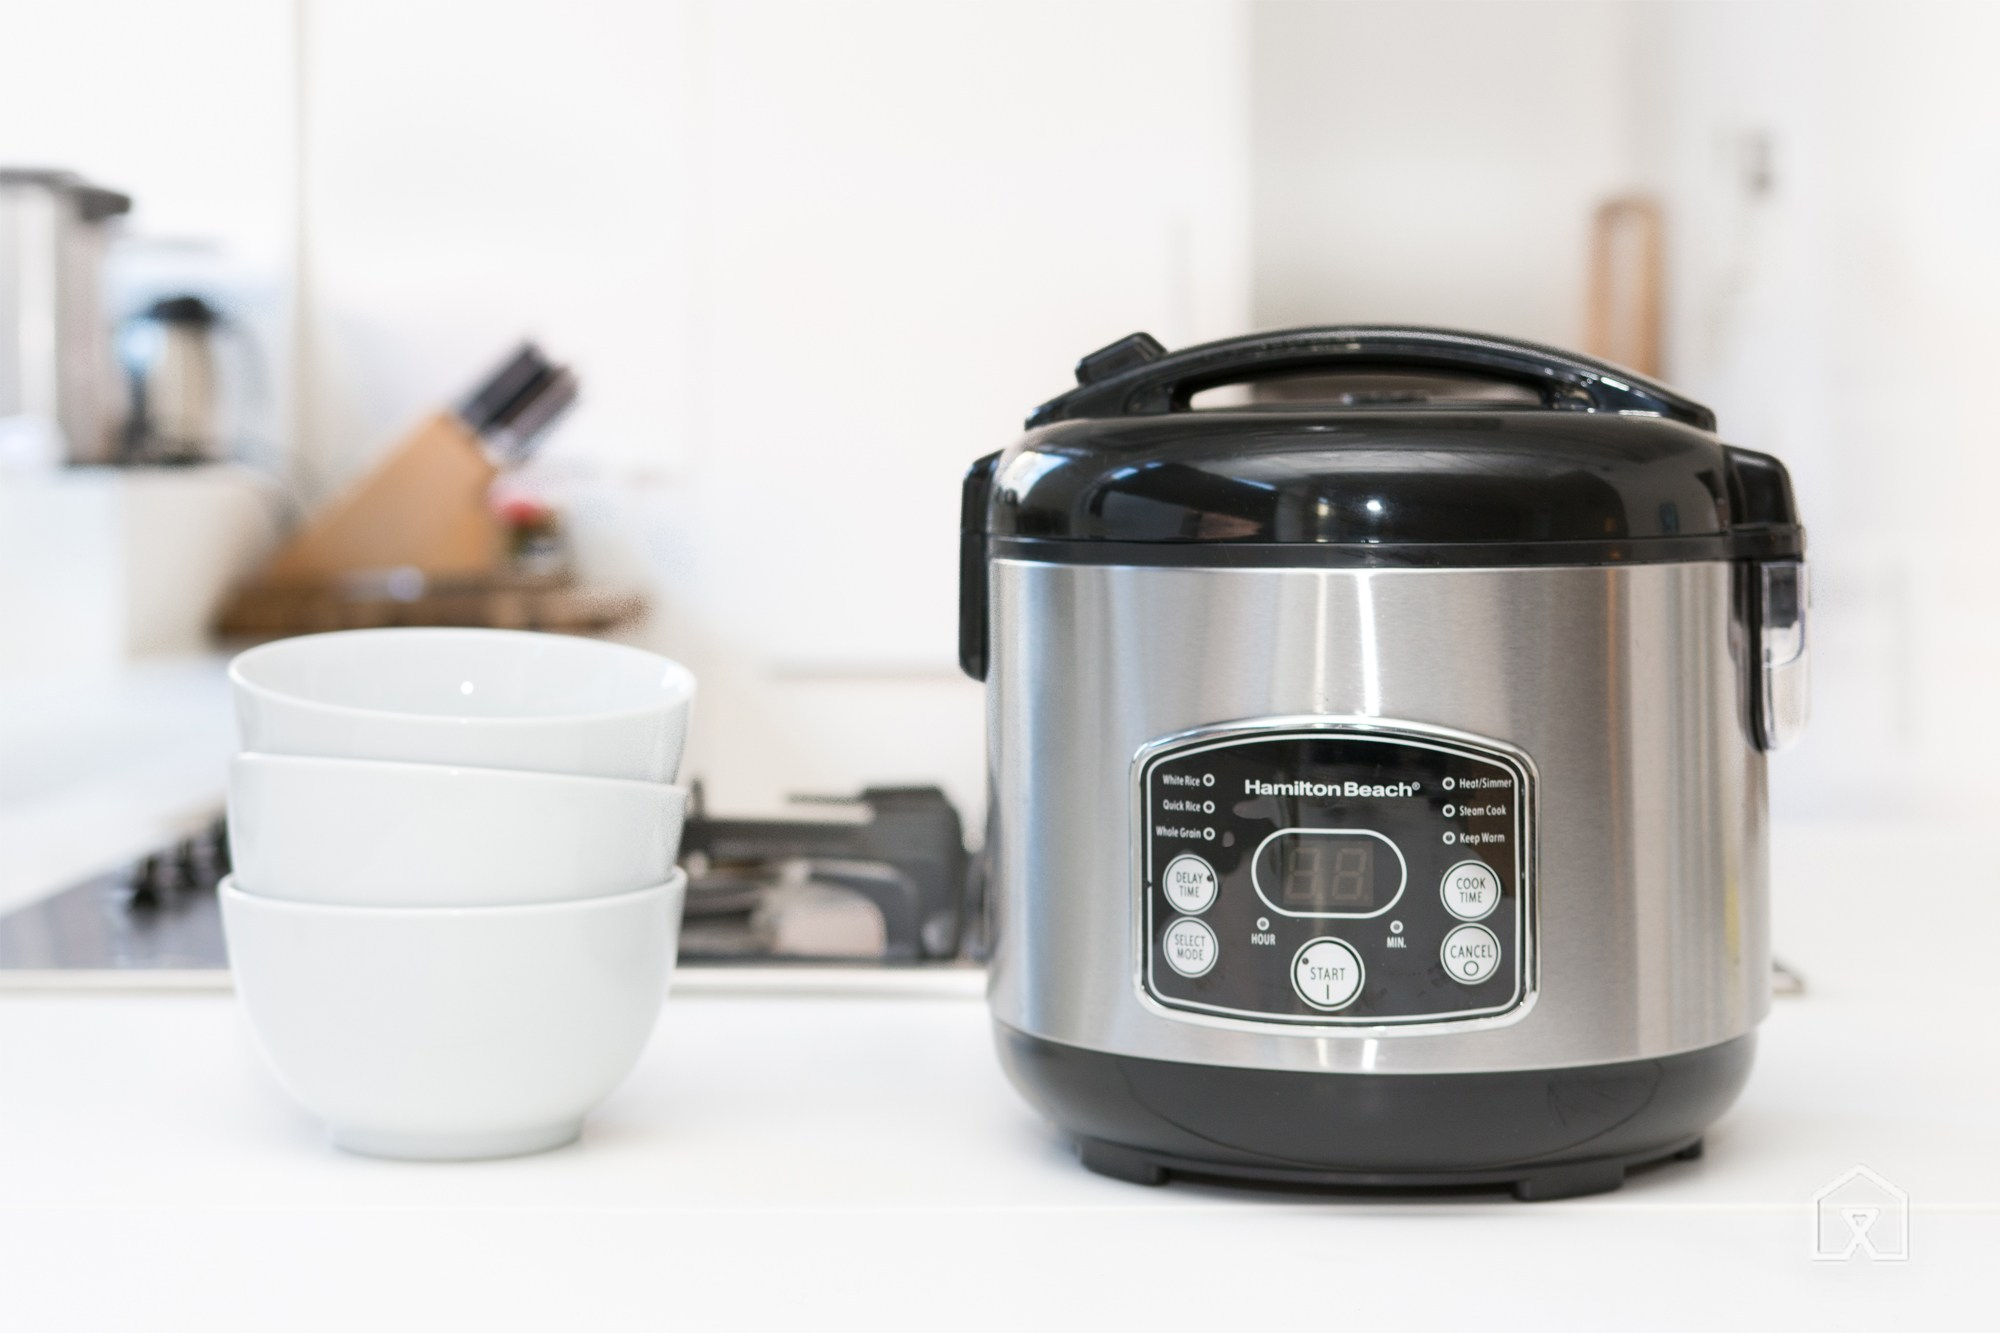 What makes rice cookers so special?